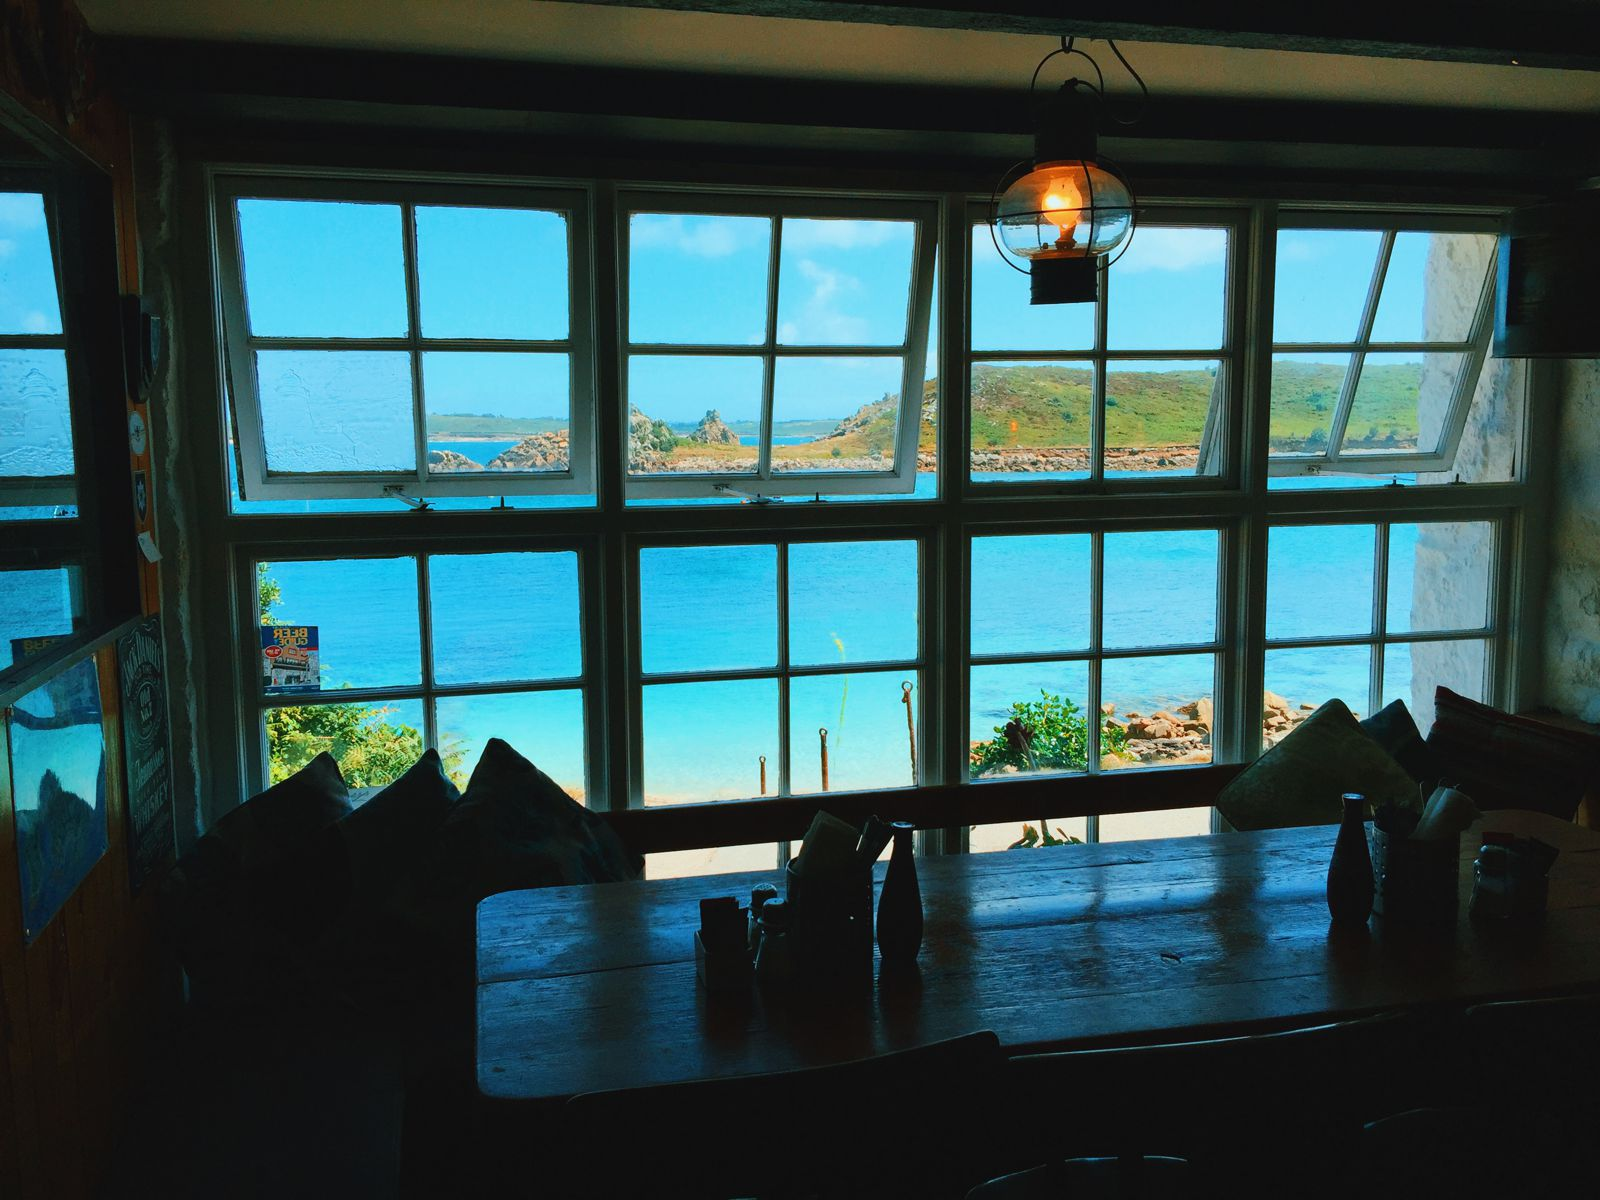 More Photos From The Isles Of Scilly... (21)